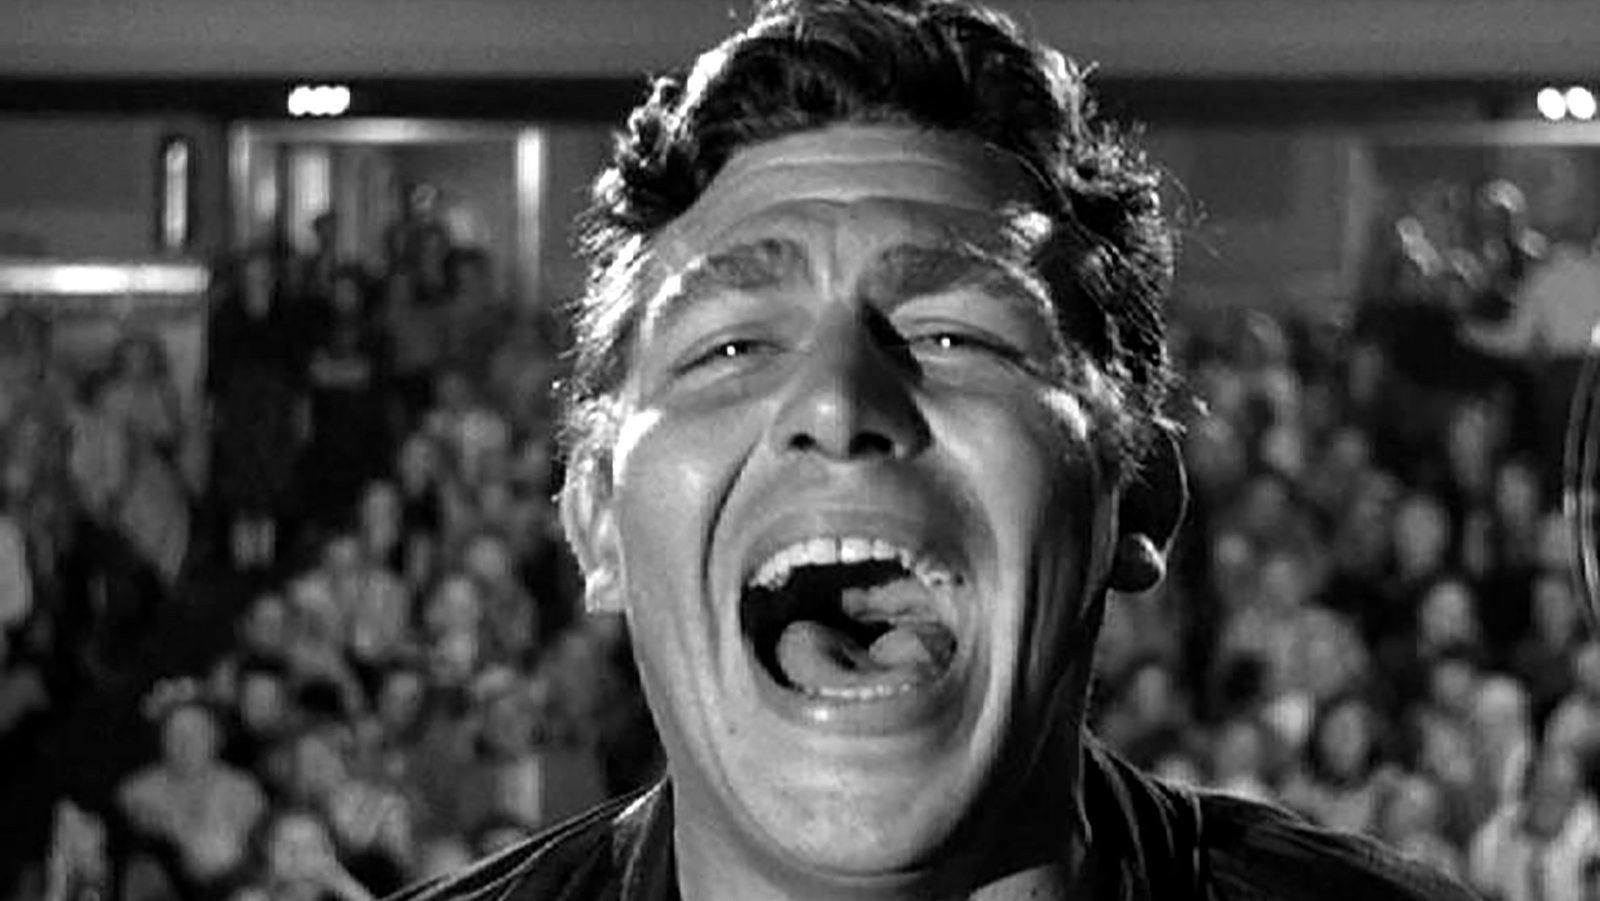 A Face In The Crowd Predicted The Trump Era — in 1957 | Film/TV/Etc. Blog